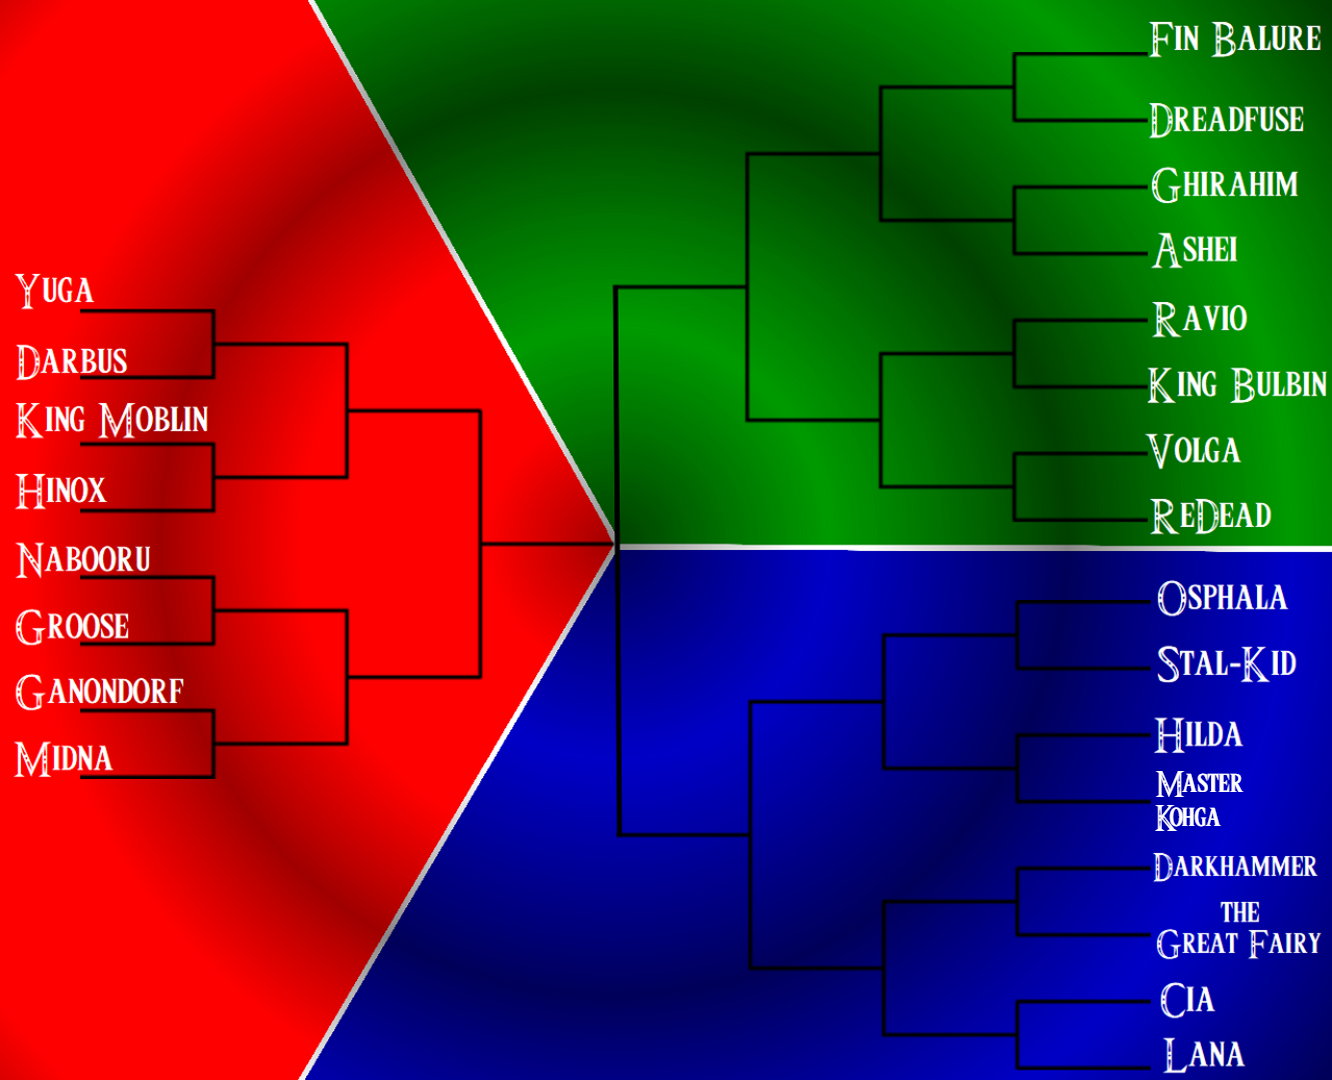 HPW Triforce Tournament Brackets